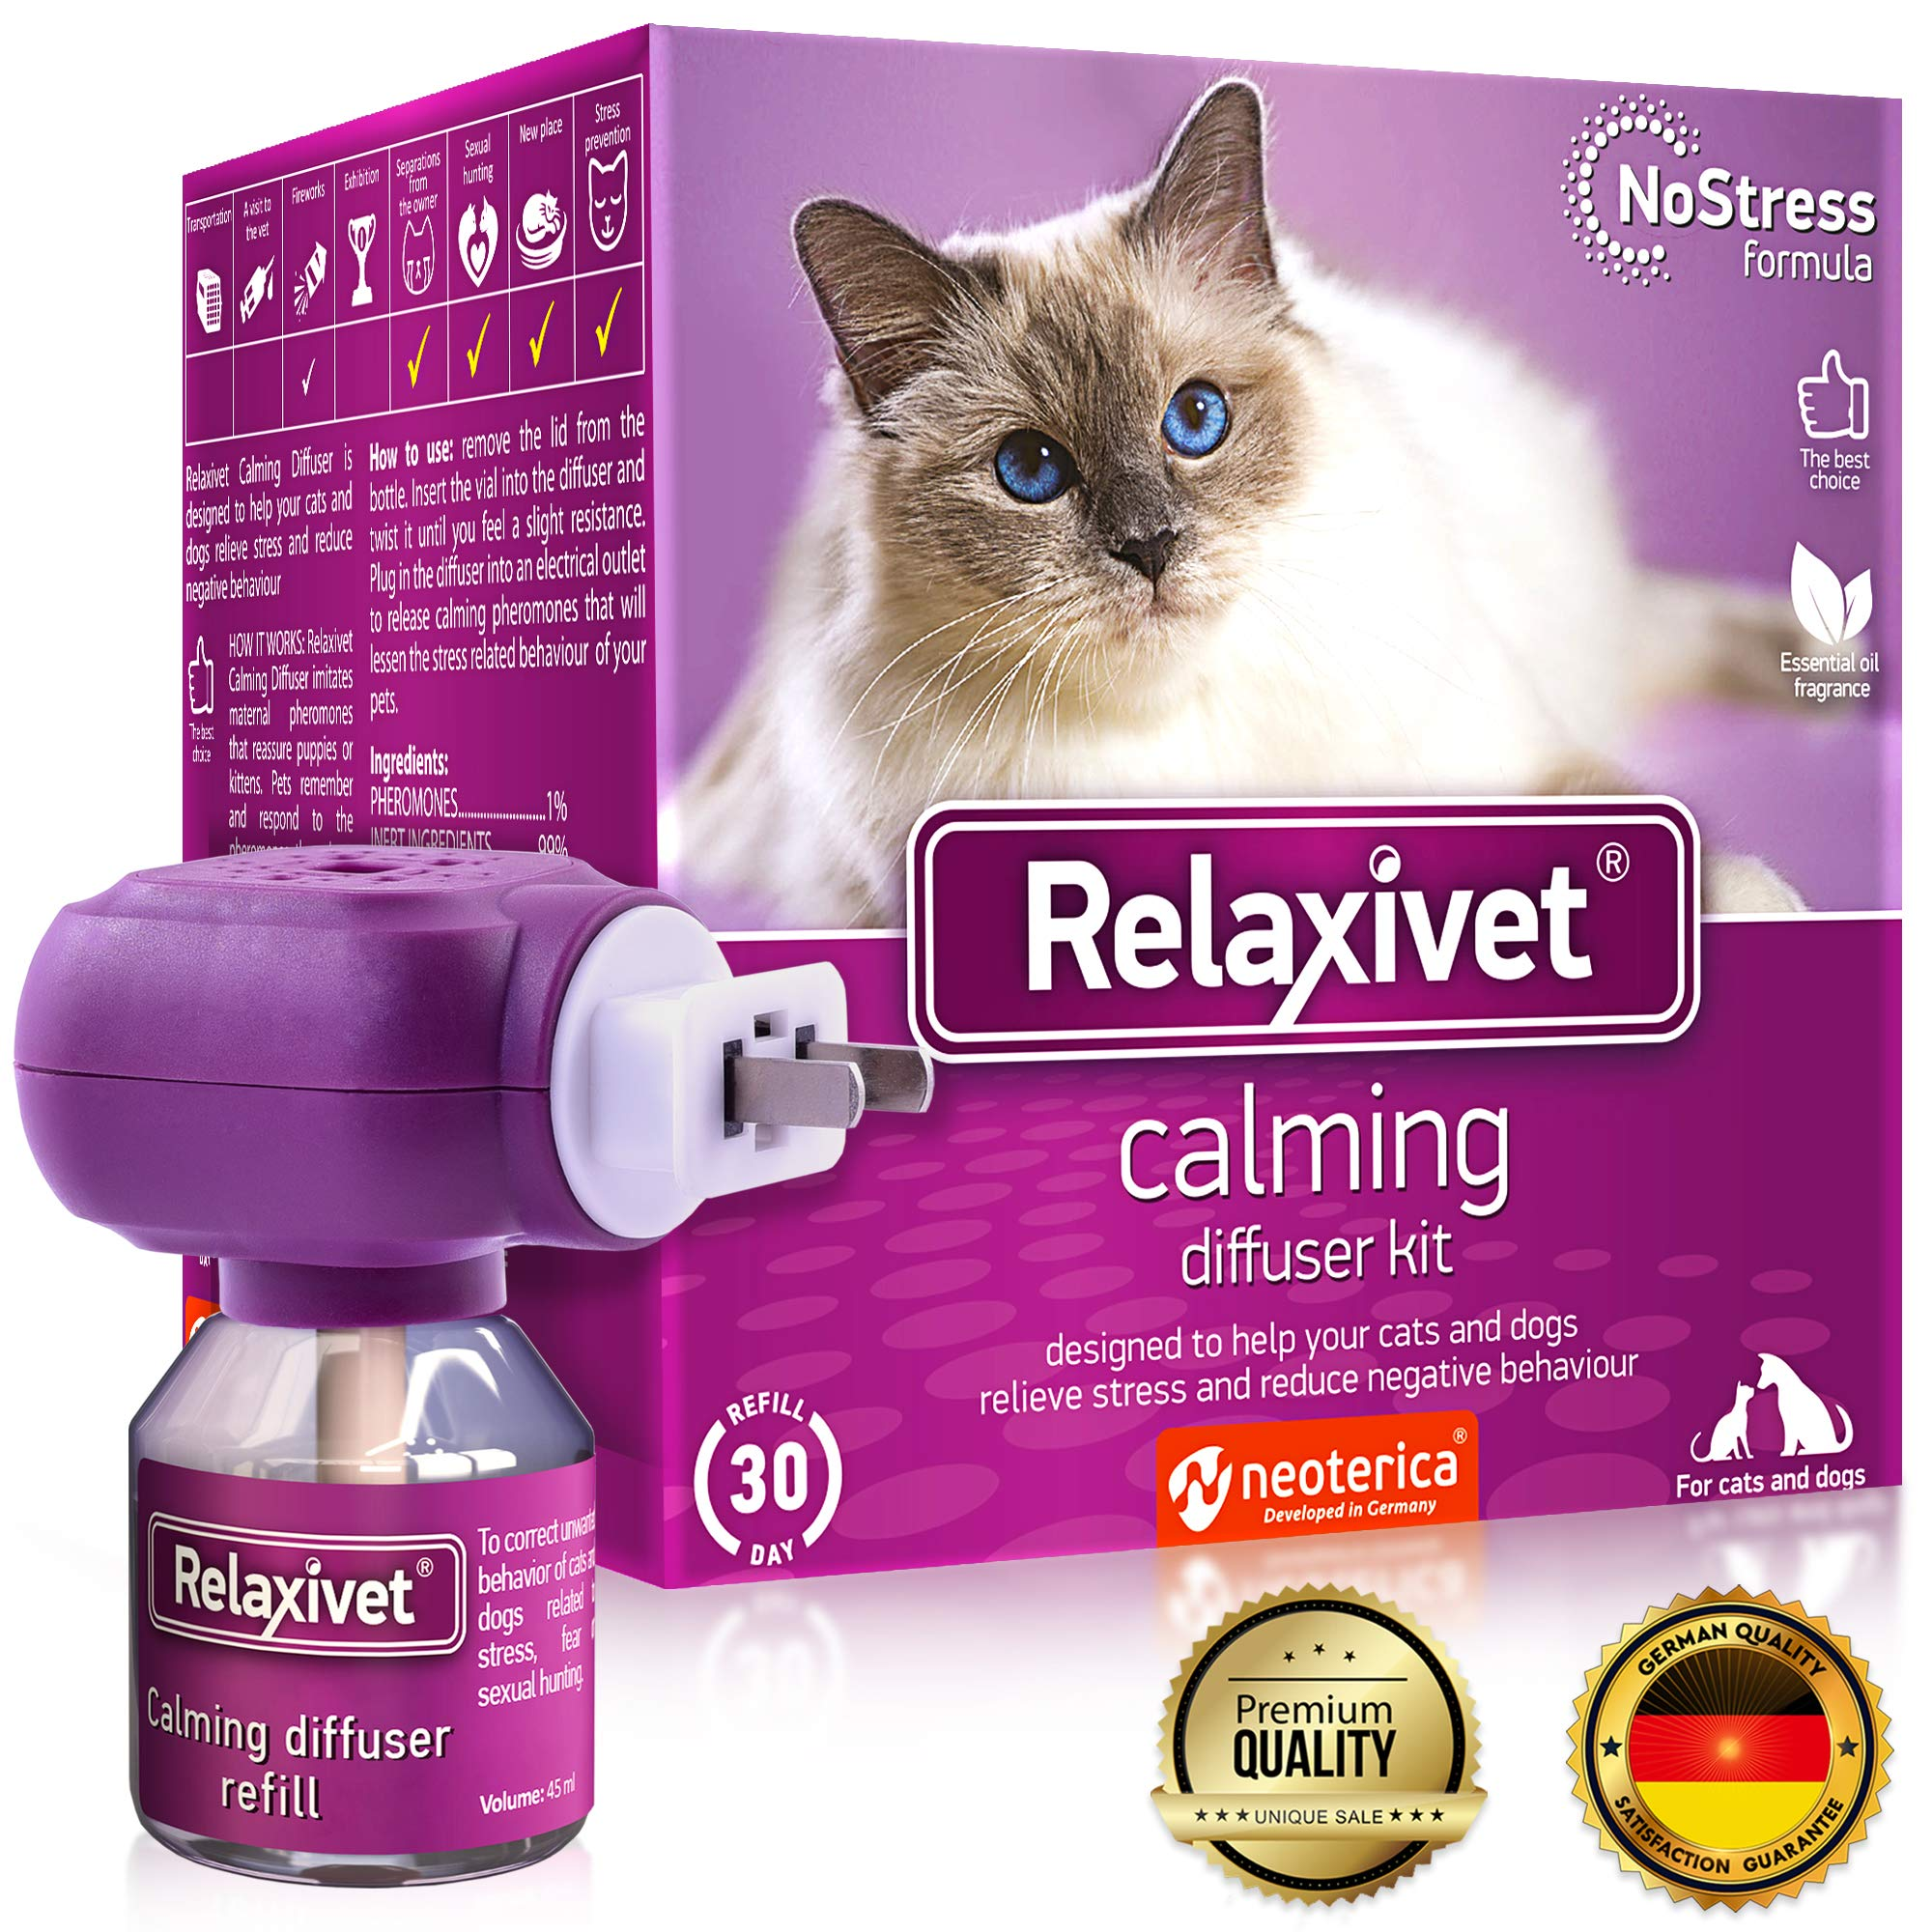 Relaxivet Natural Cat Calming Diffuser - Improved No-Stress Formula - Anti-Anxiety Treatment #1 for Cats and Dogs with a Long-Lasting Calming Effect by Relaxivet